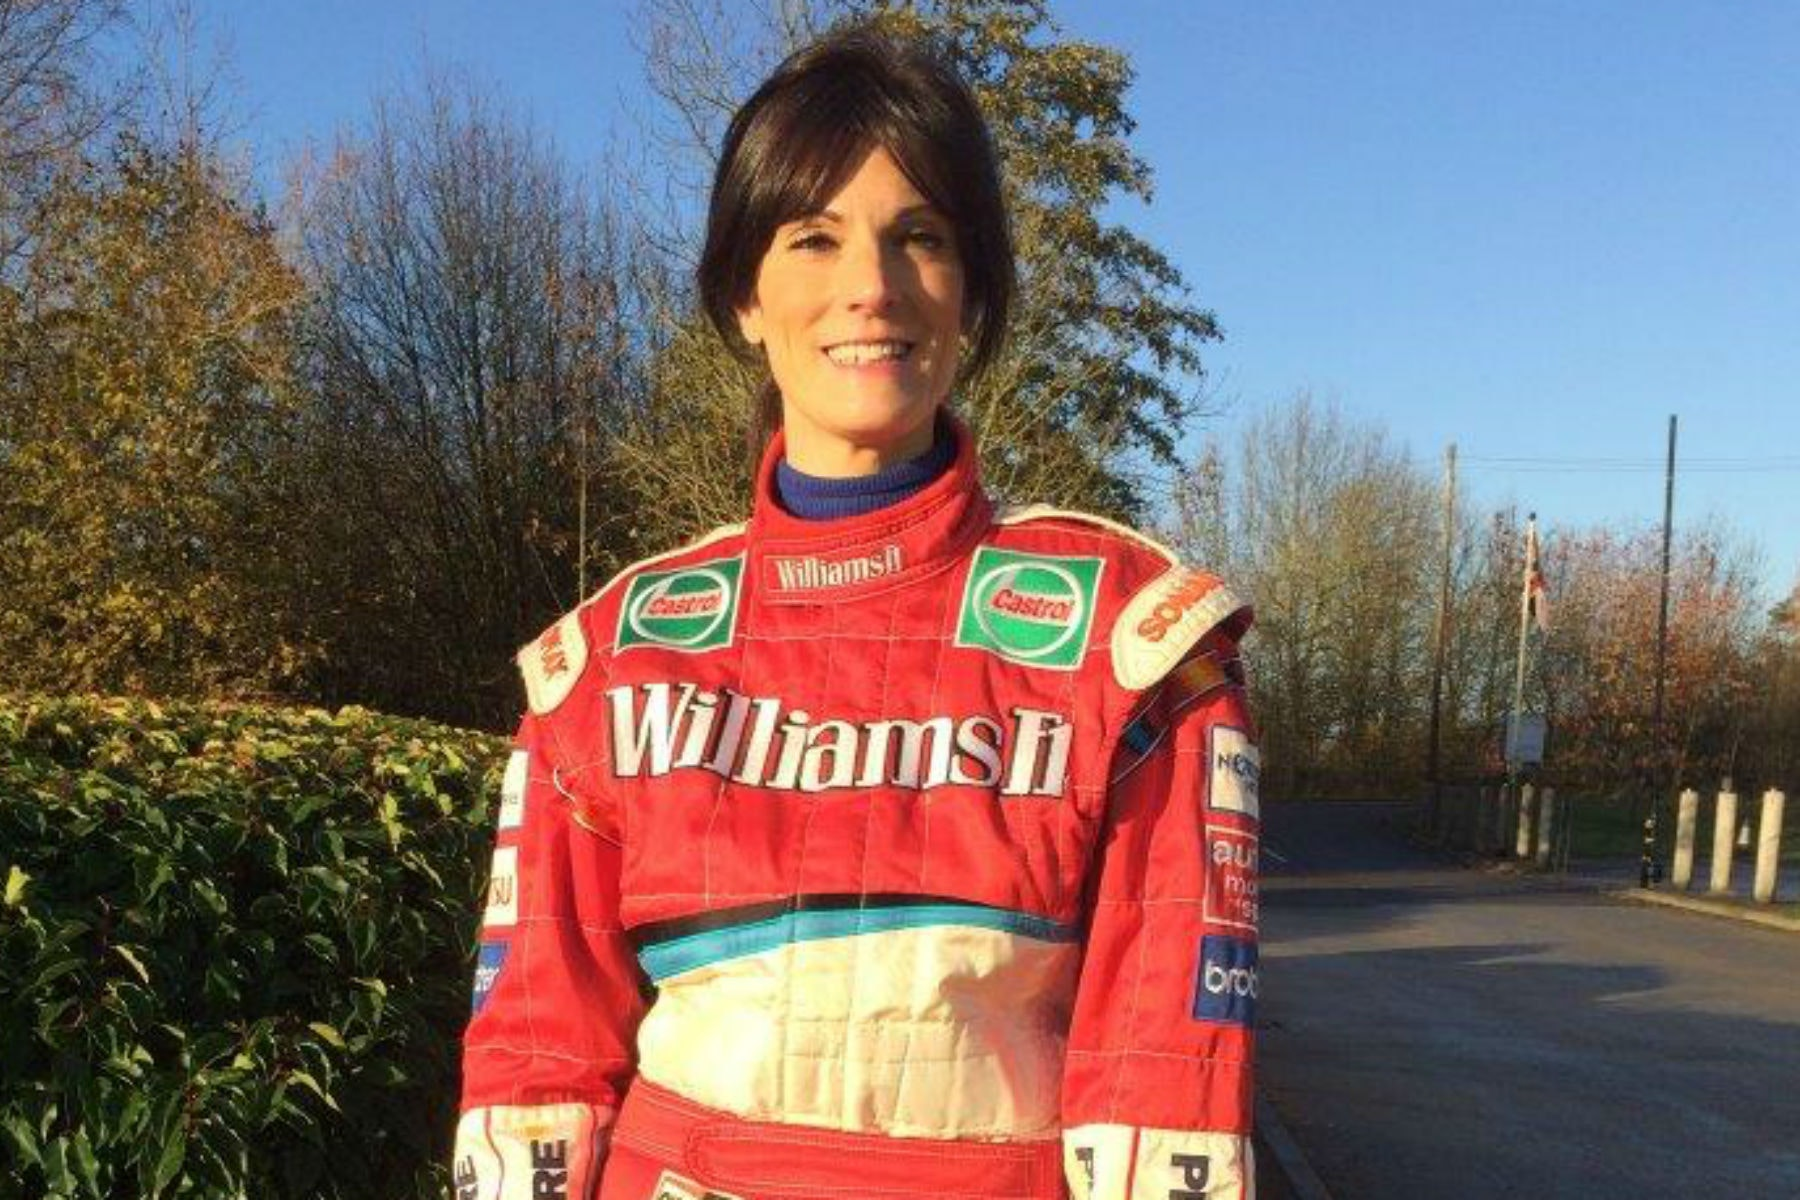 Formula One racing suit donated to charity shop up for auction